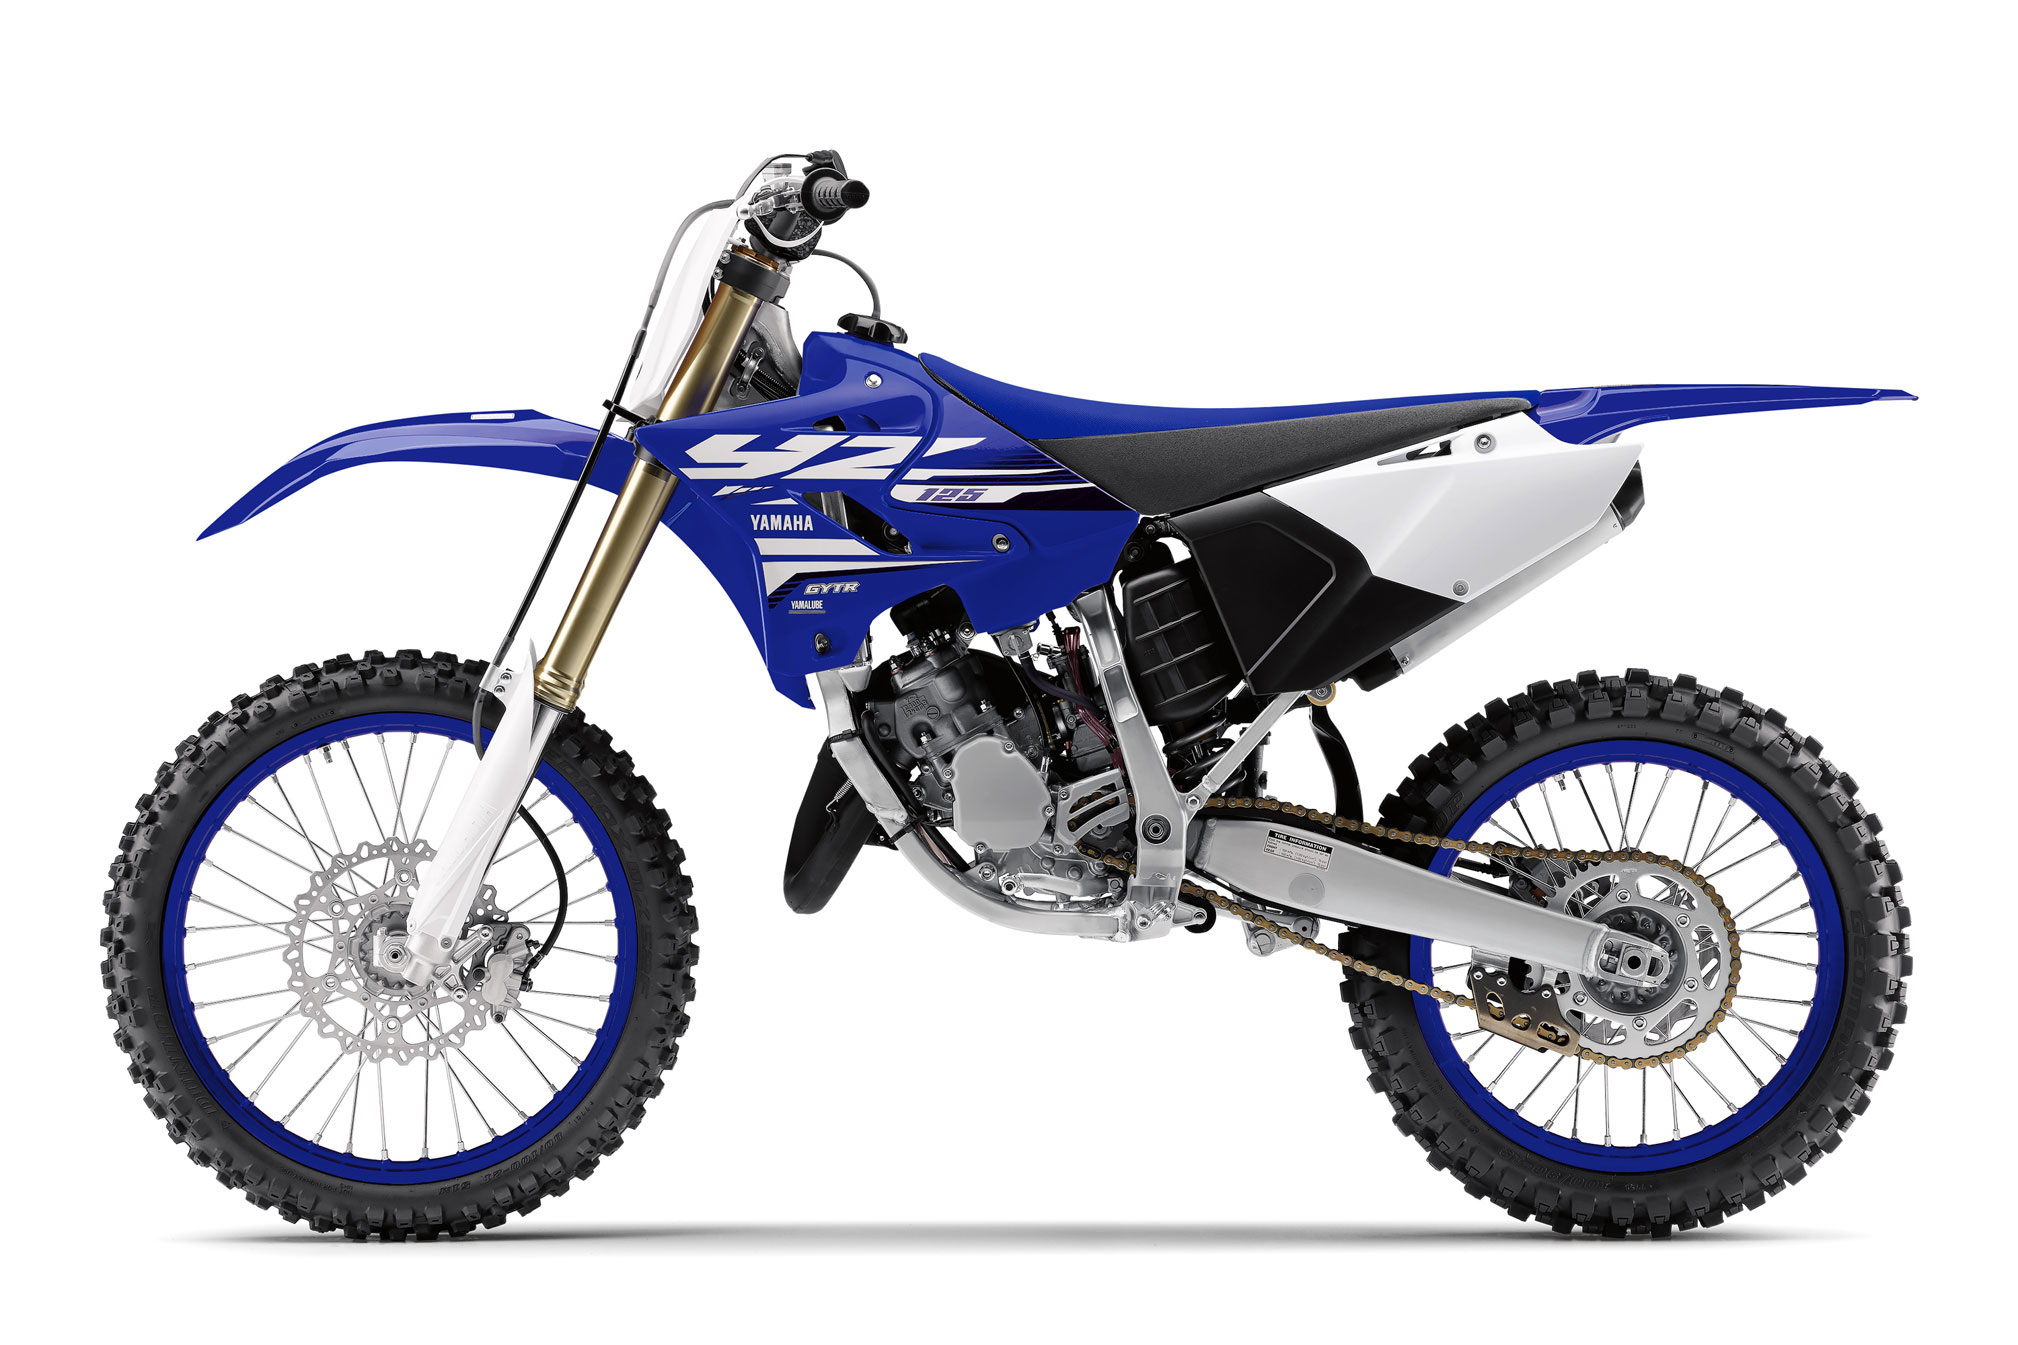 2018 yamaha yz125 review totalmotorcycle. Black Bedroom Furniture Sets. Home Design Ideas